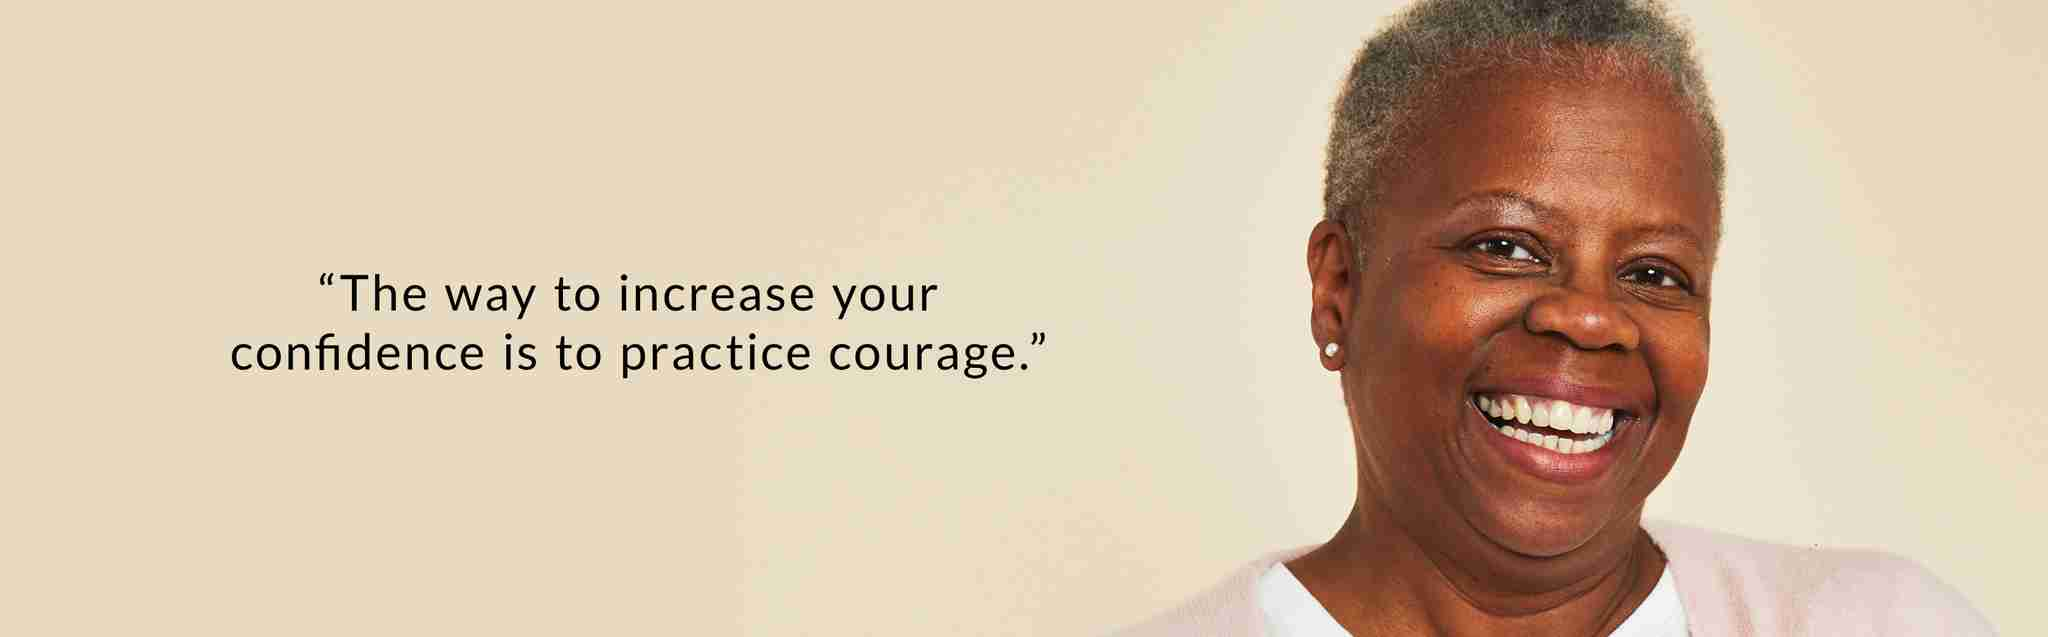 the way to increase your confidence is to practice courage